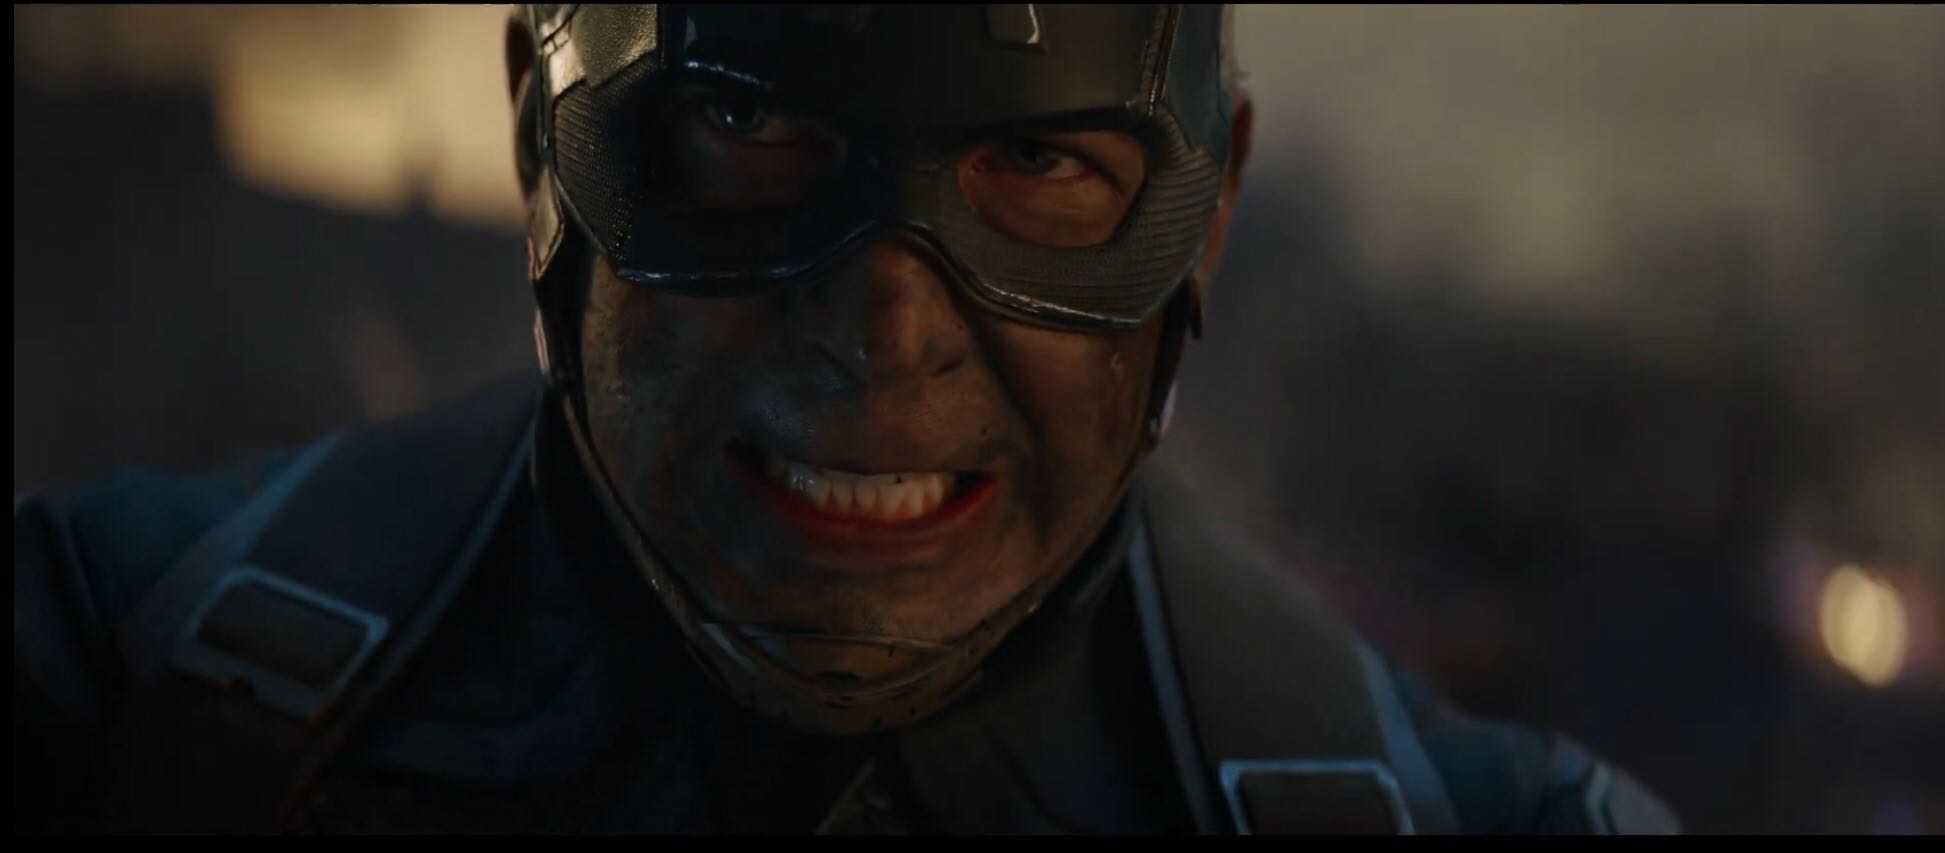 New Avengers: Endgame trailer, a new team member helps prepares for the final battle